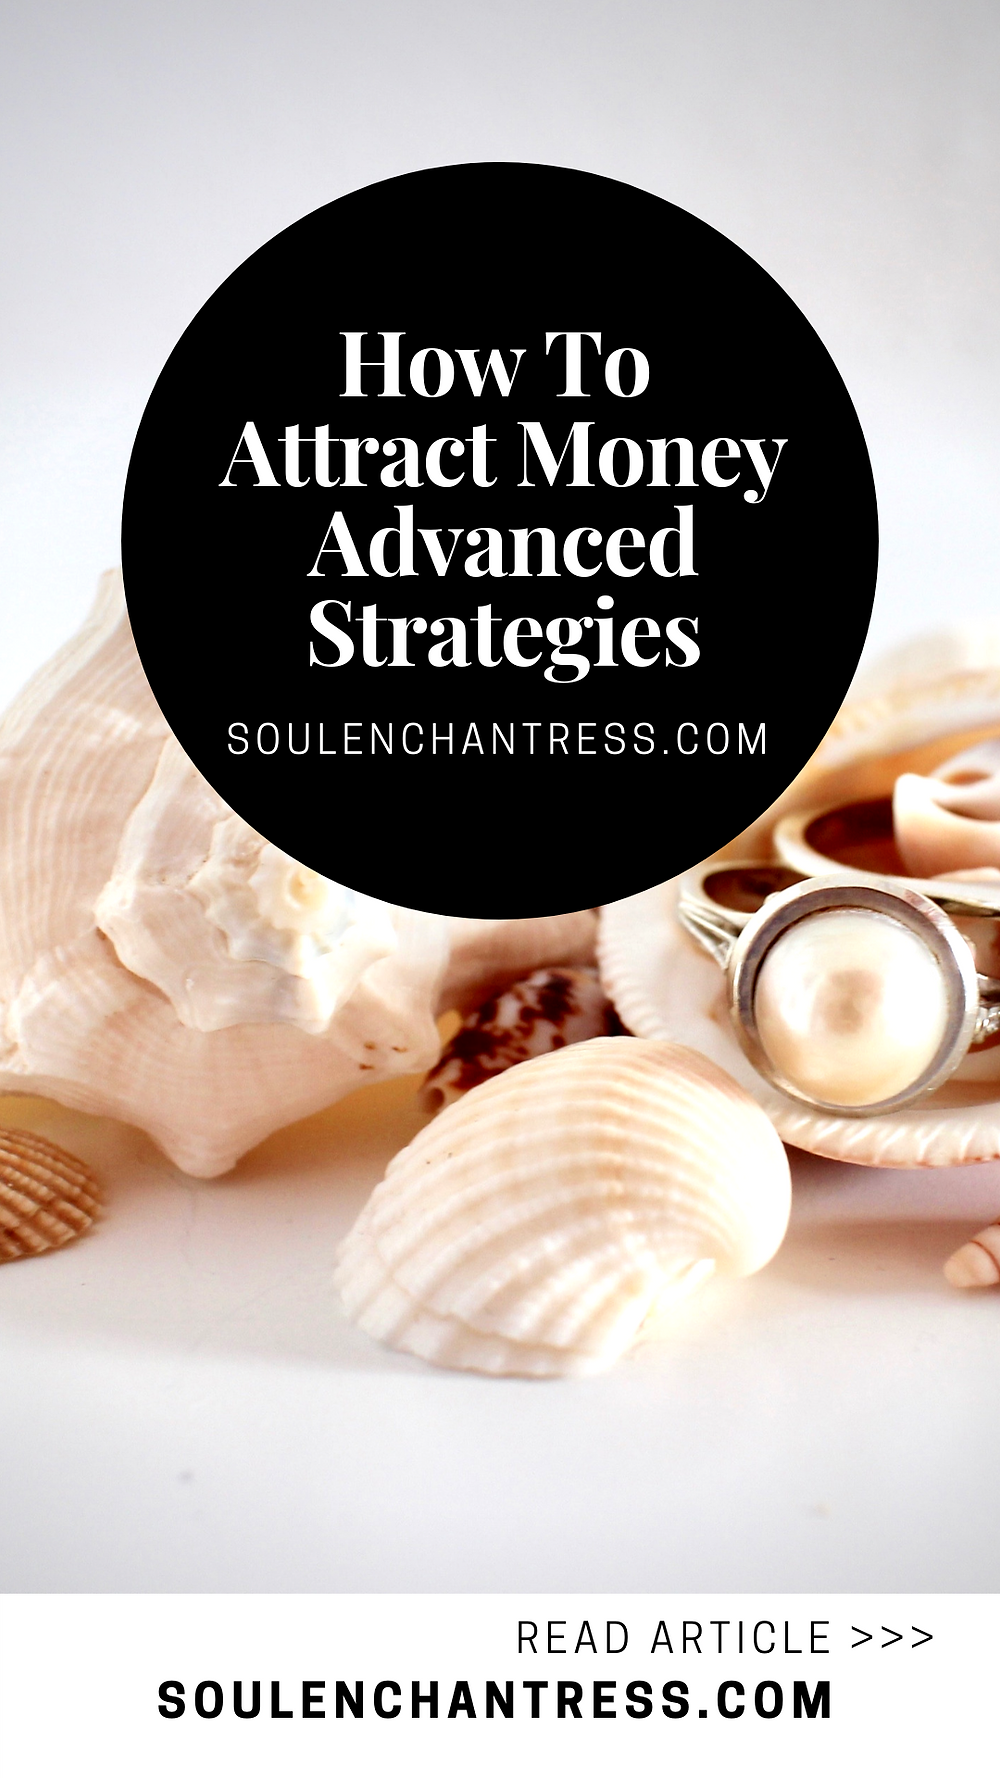 how to attract money, how to increase your money flow, how to increase my money flow, soul enchantress